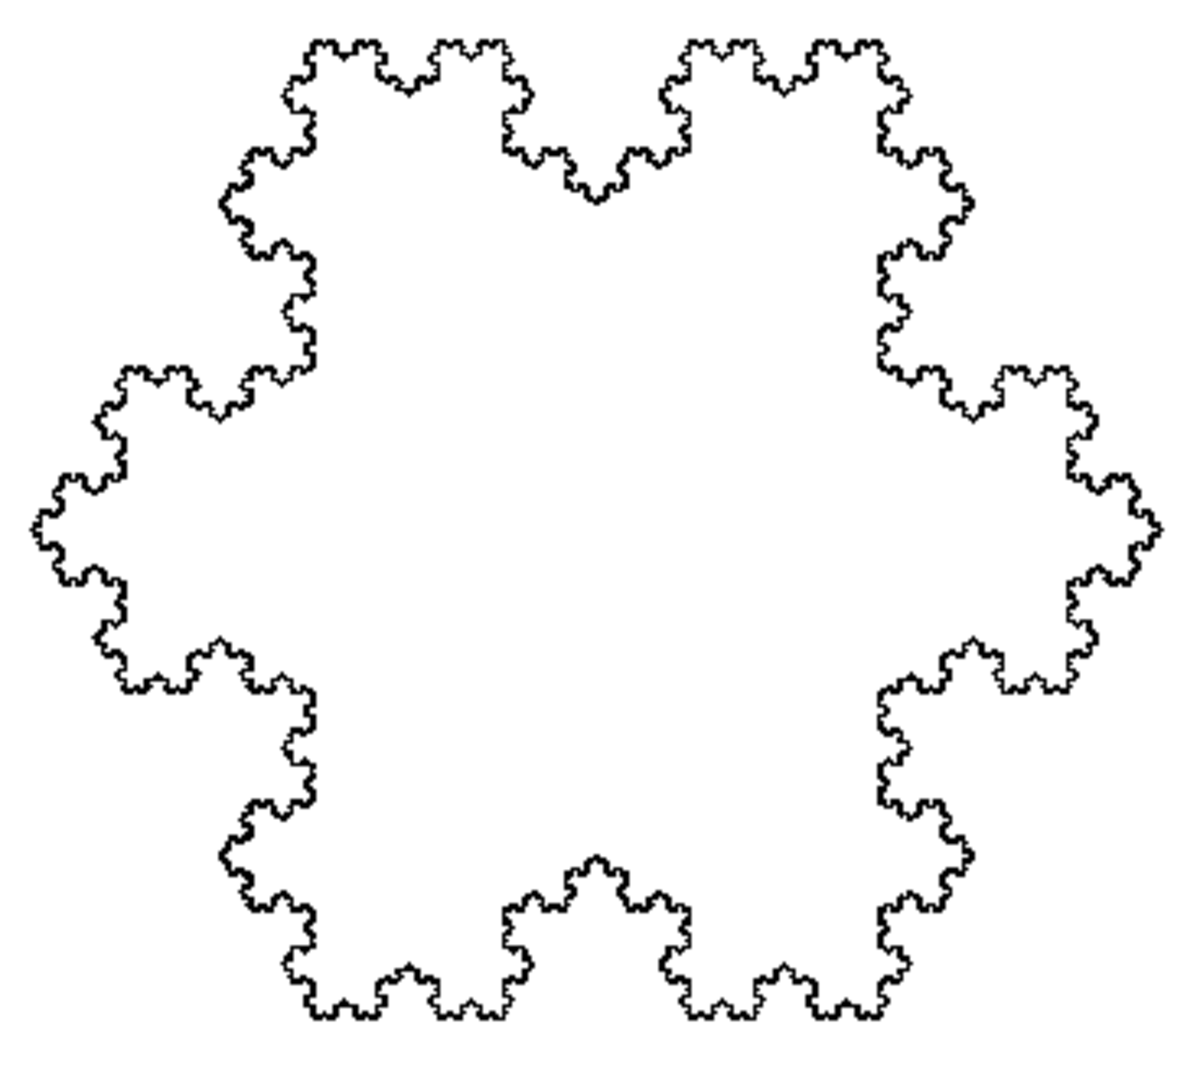 Think of the final product (your book) as a snowflake, which each part making up its shape.